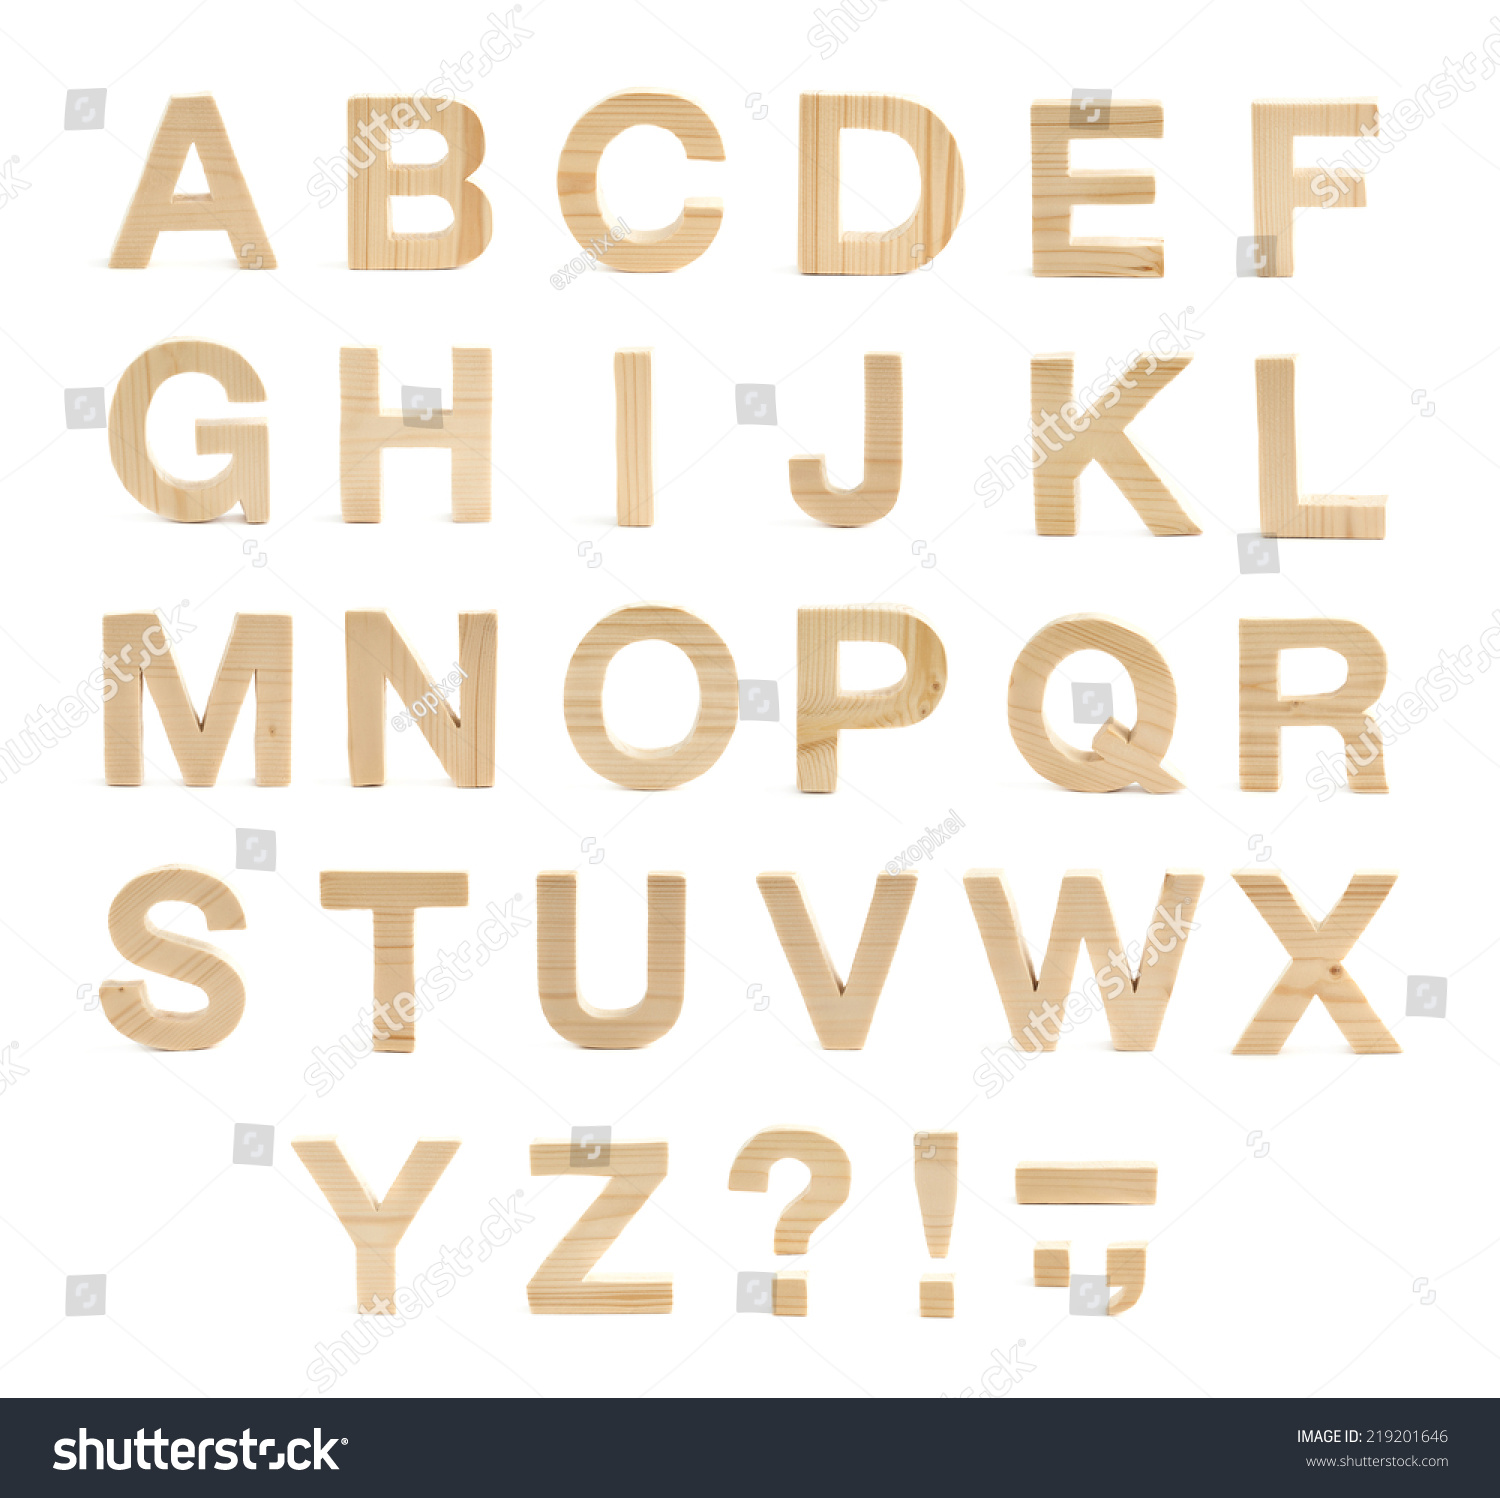 Wooden Abc Letter Alphabet Set Of Latin Letters And Symbols Made Of